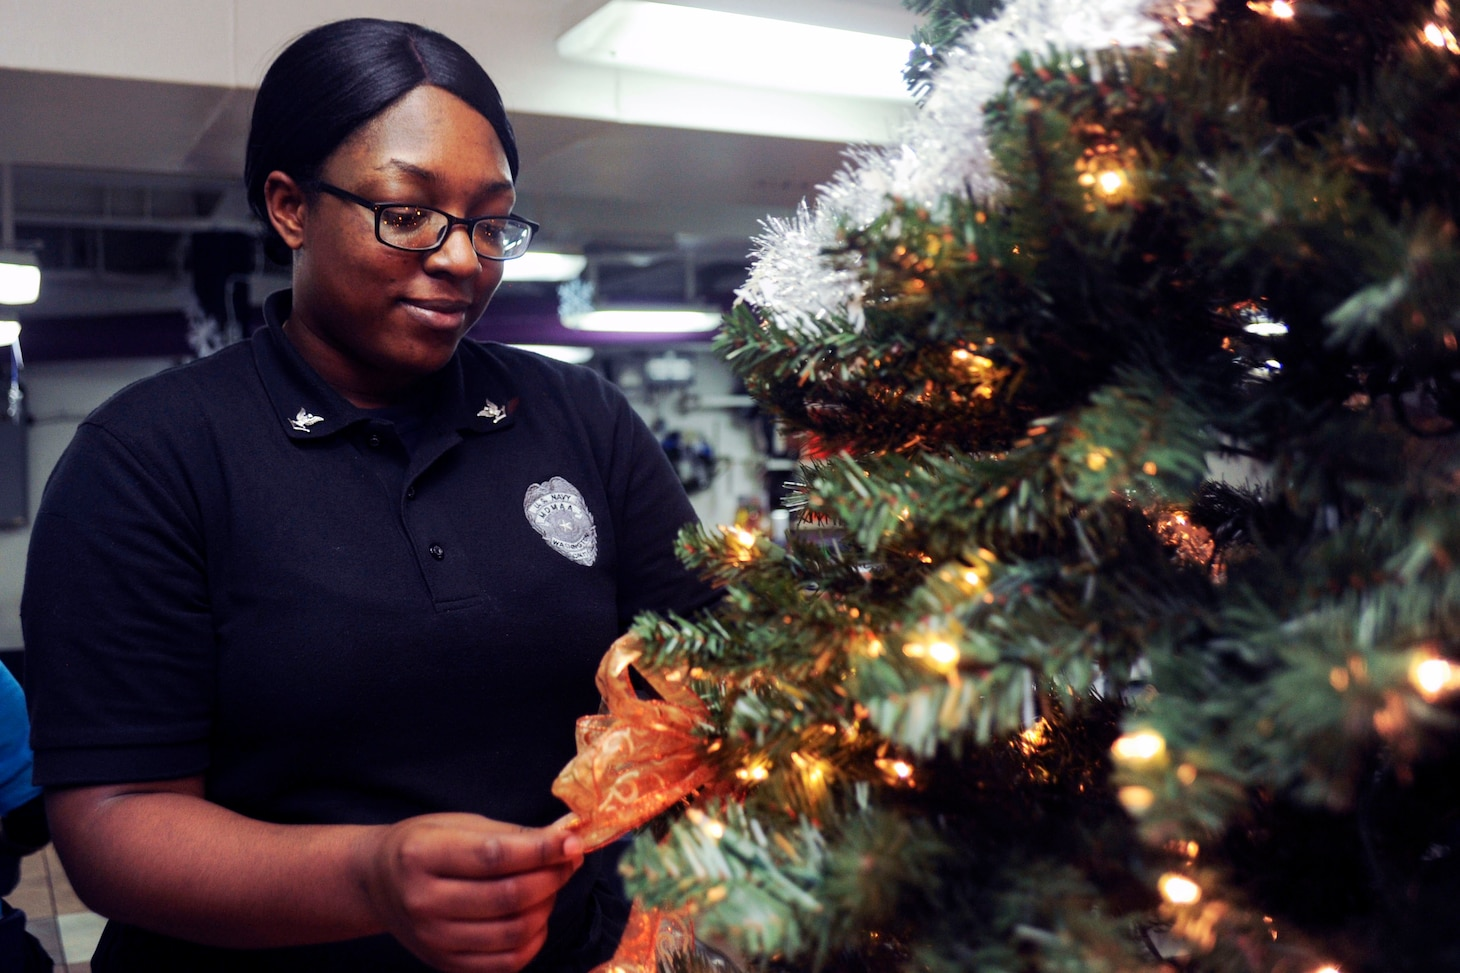 Navy Petty Officer 3rd Class Taylor Bowie adjusts holiday decorations after a meal aboard the aircraft carrier USS George Washington in the Atlantic Ocean, Dec. 1, 2016. The George Washington, homeported in Norfolk, is underway conducting carrier qualifications in the Atlantic Ocean. Bowie is a mess deck master-at-arms. Navy photo by Petty Officer 3rd Class Alora R. Blosch